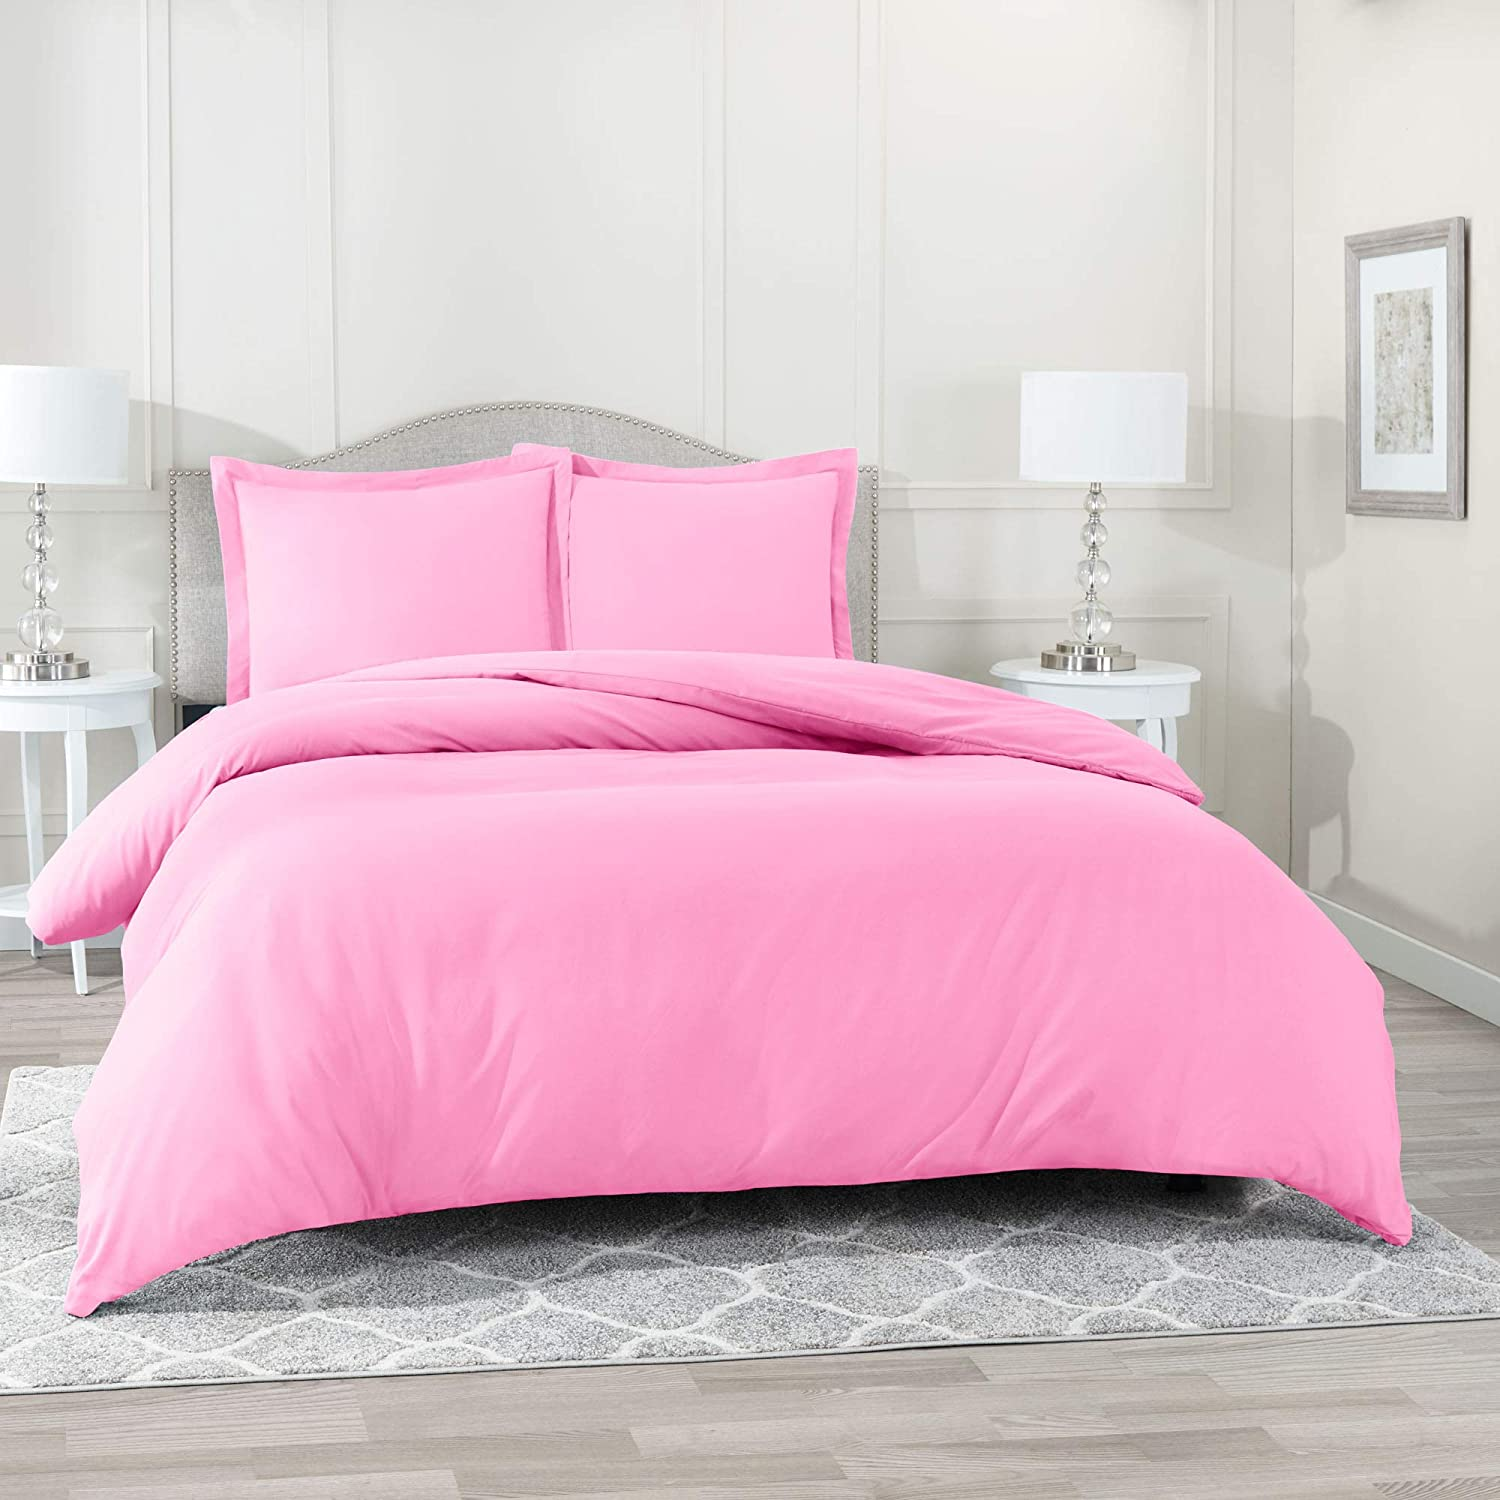 Nestl Bedding Duvet Cover 2 Piece Set – Ultra Soft Double Brushed Microfiber Hotel Collection – Comforter Cover with Button Closure and 1 Pillow Sham, Light Pink - Twin (Single) 68